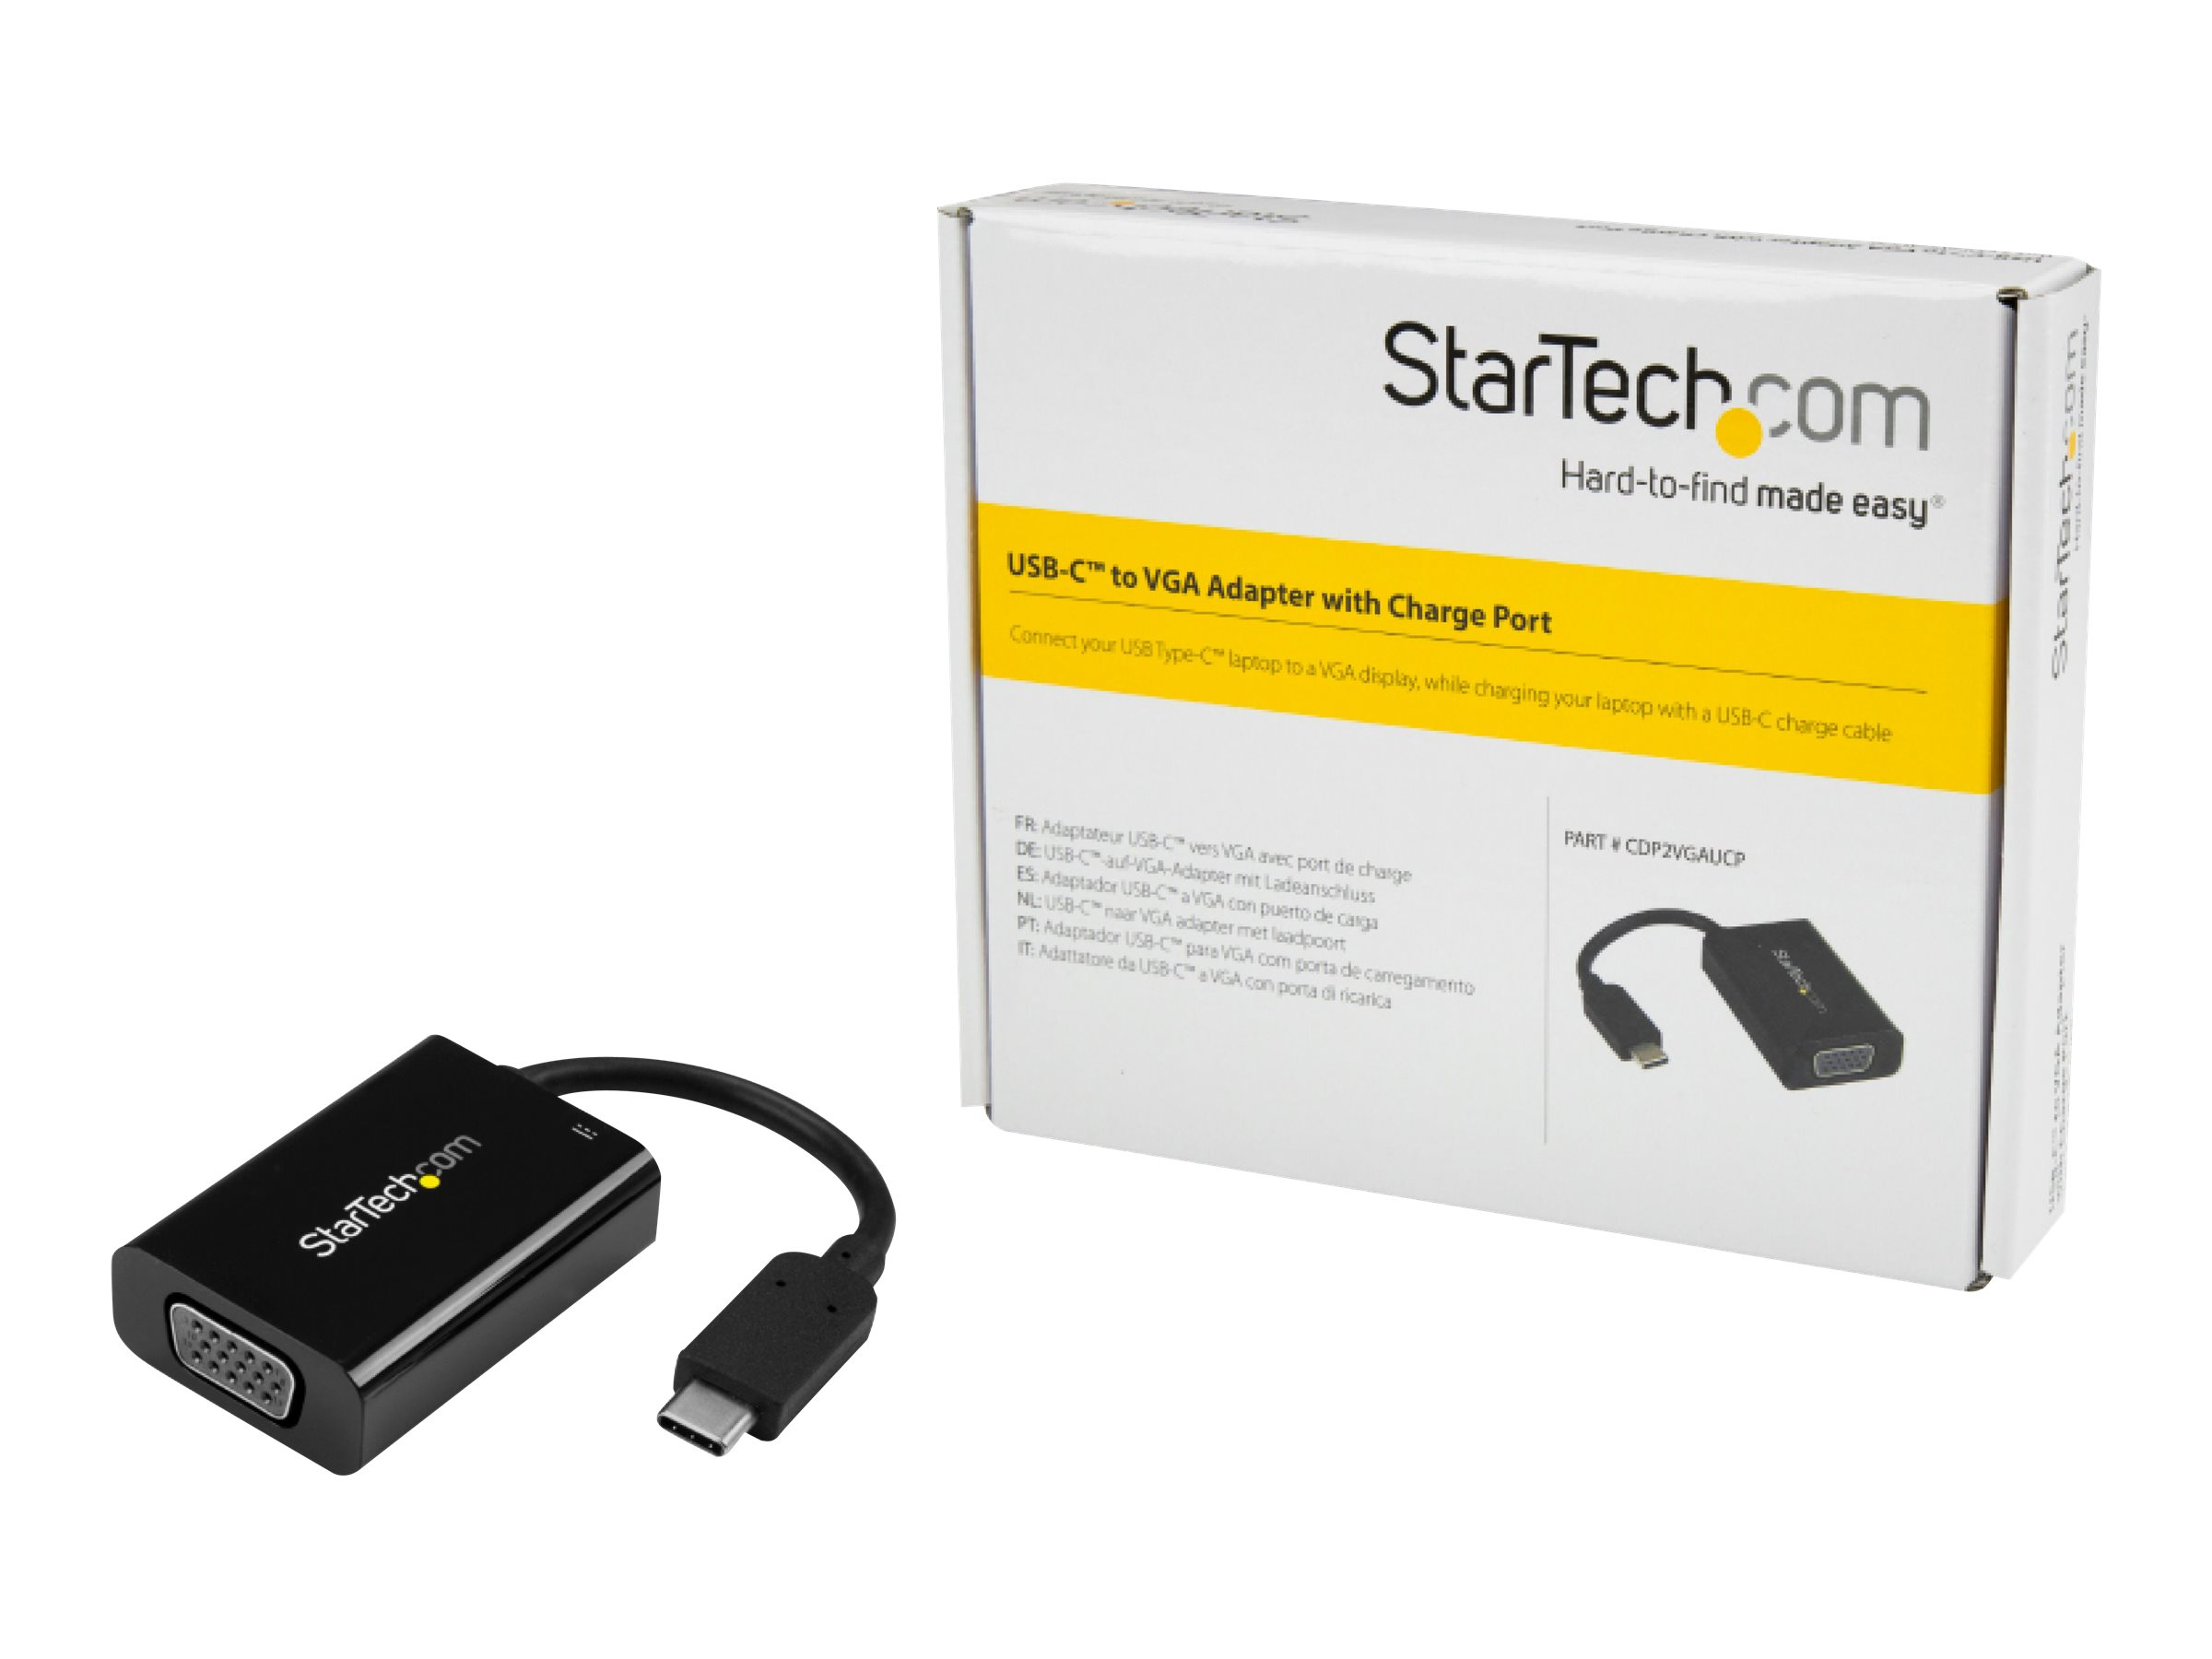 StarTech.com USB-C to VGA Adapter - with Power Delivery (USB PD) - USB C Adapter - USB Type C to VGA Projector Adapter …